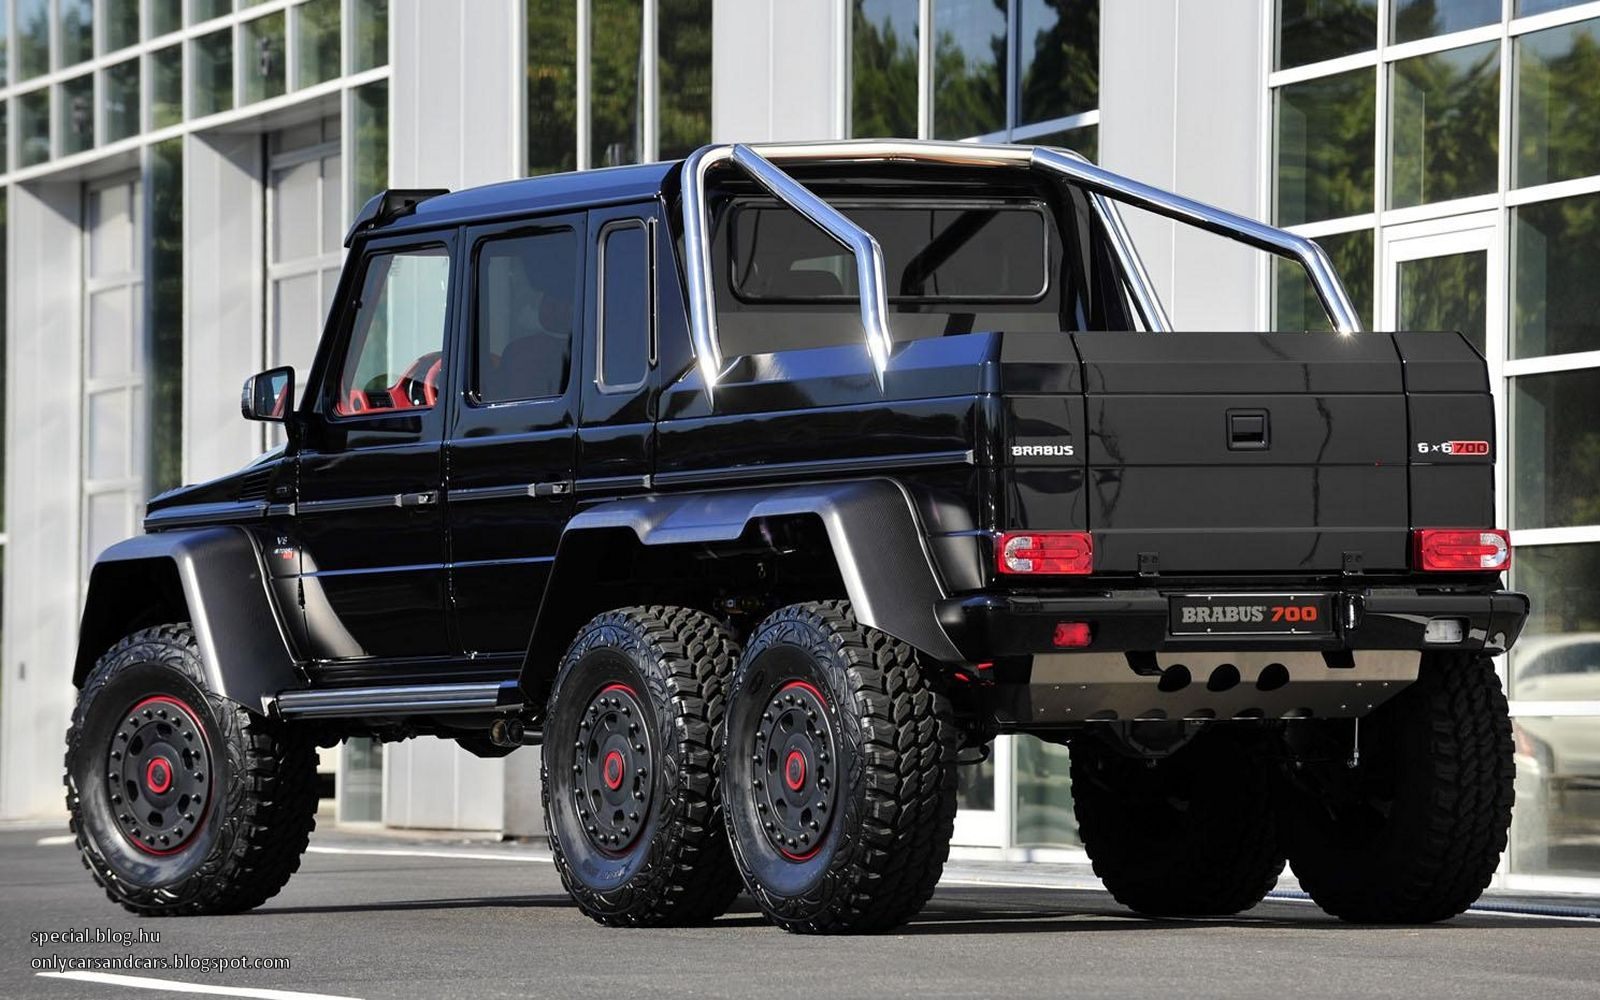 Mercedes benz g63 amg 6x6 b63s 700 by brabus mercedes made a few brabus